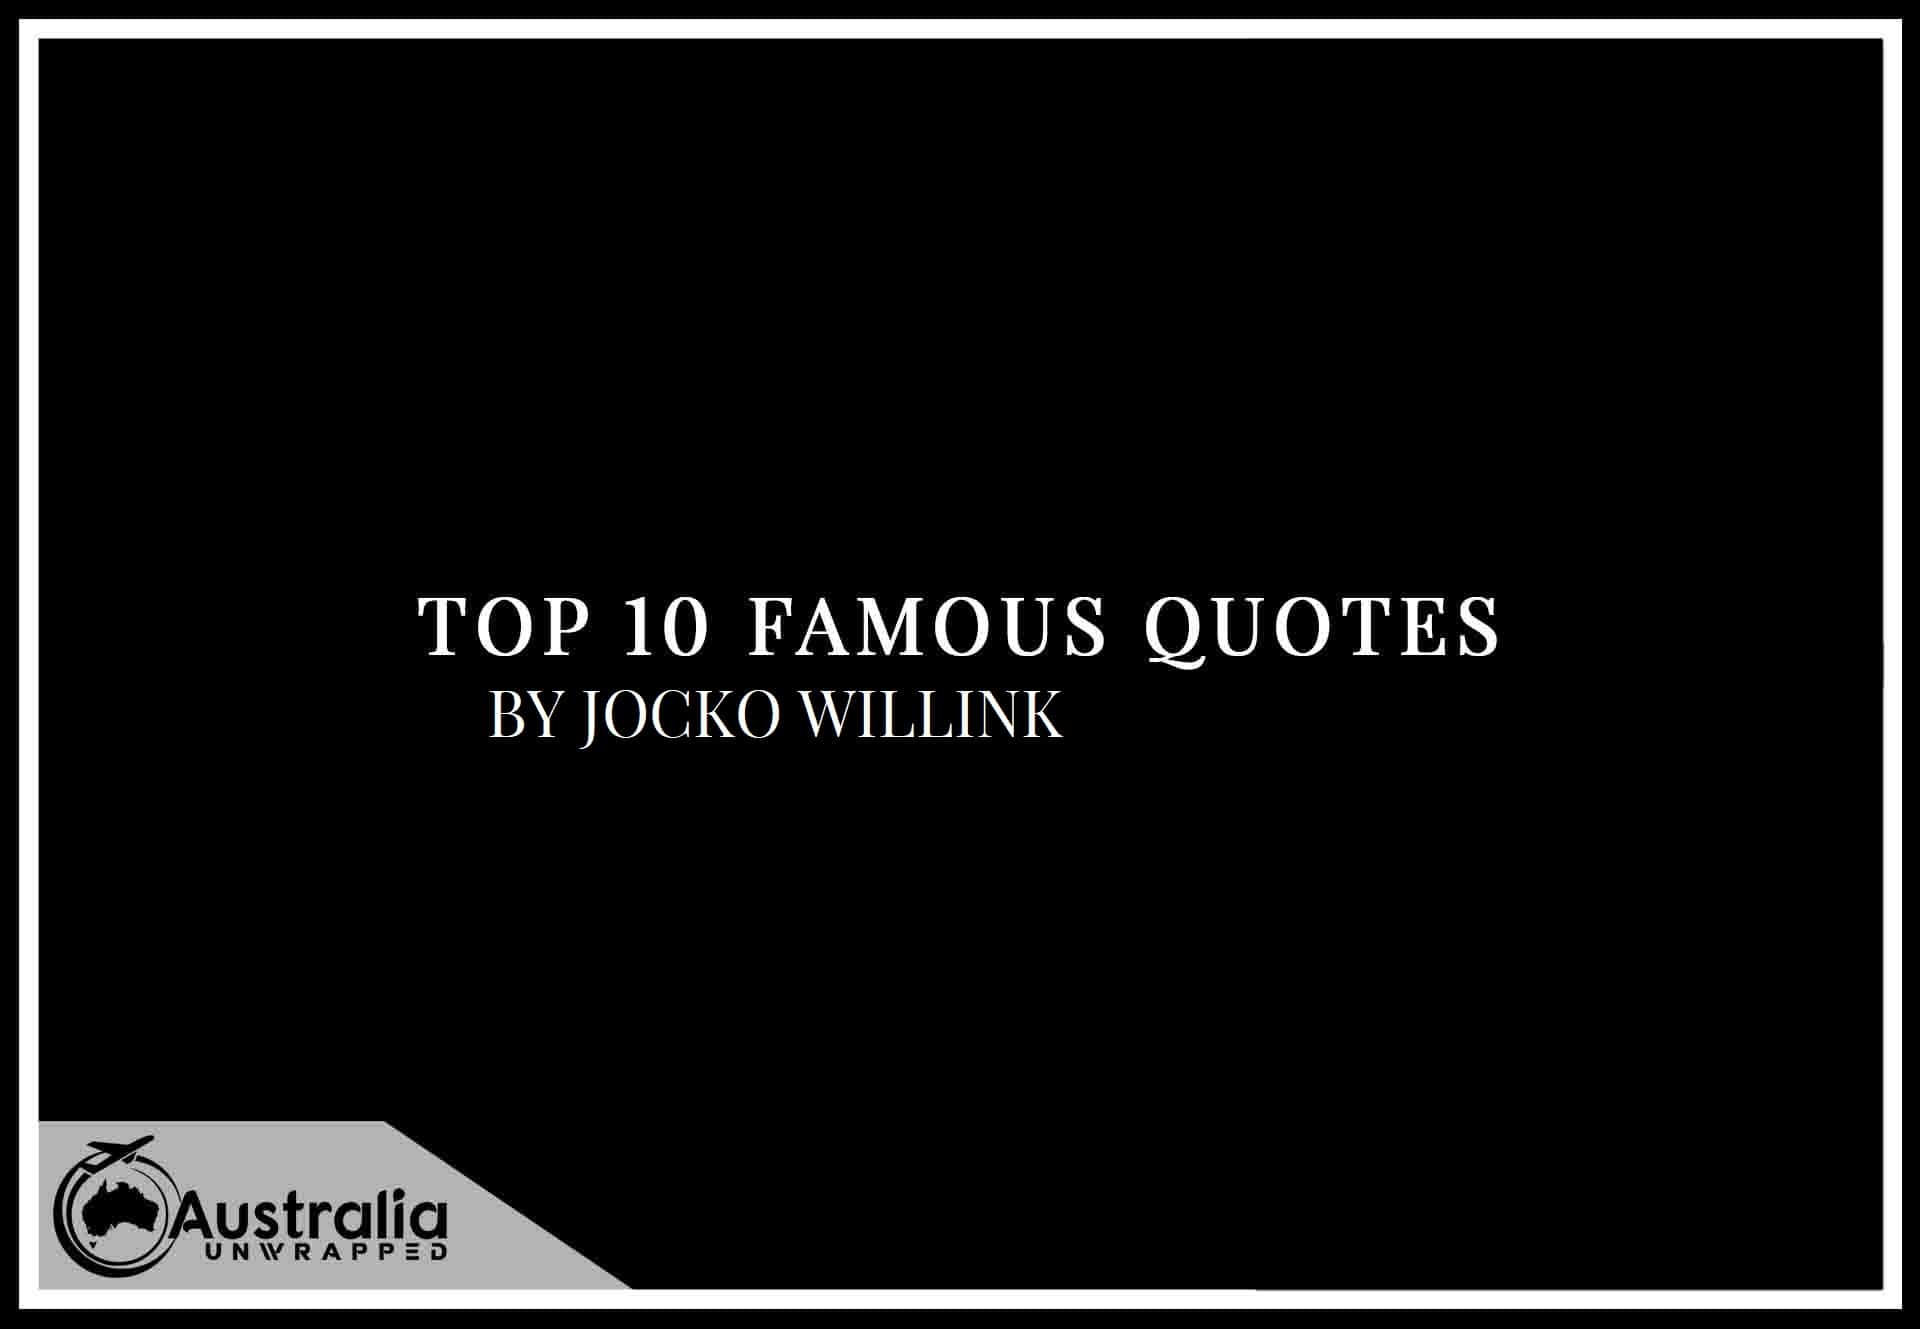 Top 10 Famous Quotes by Author Jocko Willink